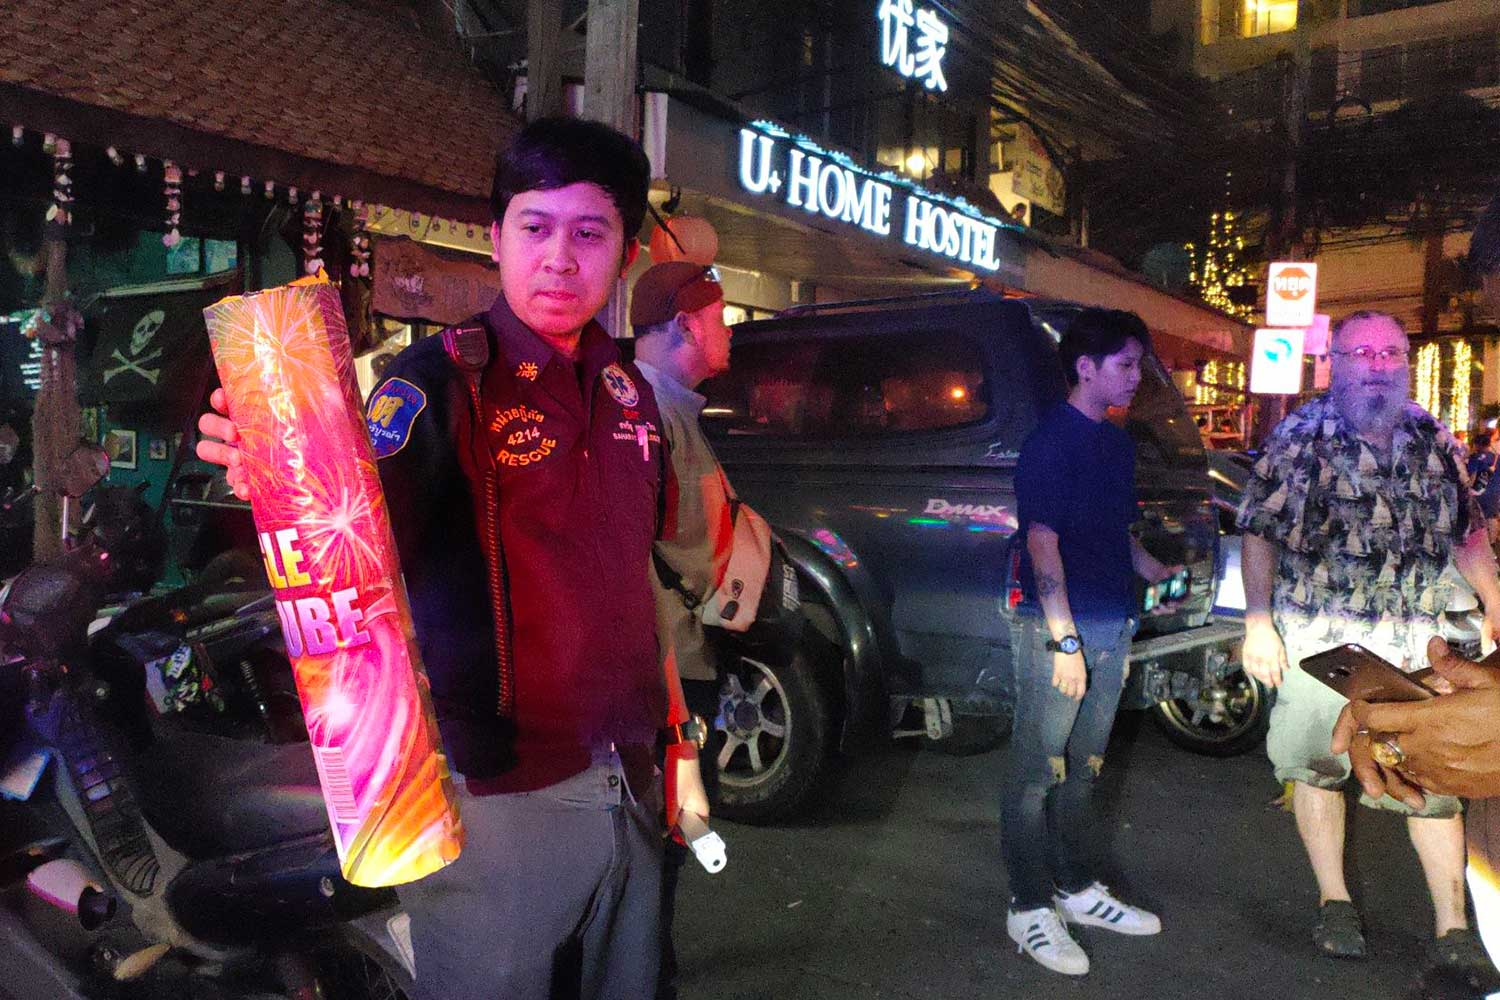 A rescue volunteer shows a firework found on the ground following an explosion that killed a 51-year-old British man in Pattaya, Chon Buri during New Year's celebrations. (Photo by Chaiyot Pupattanapong)